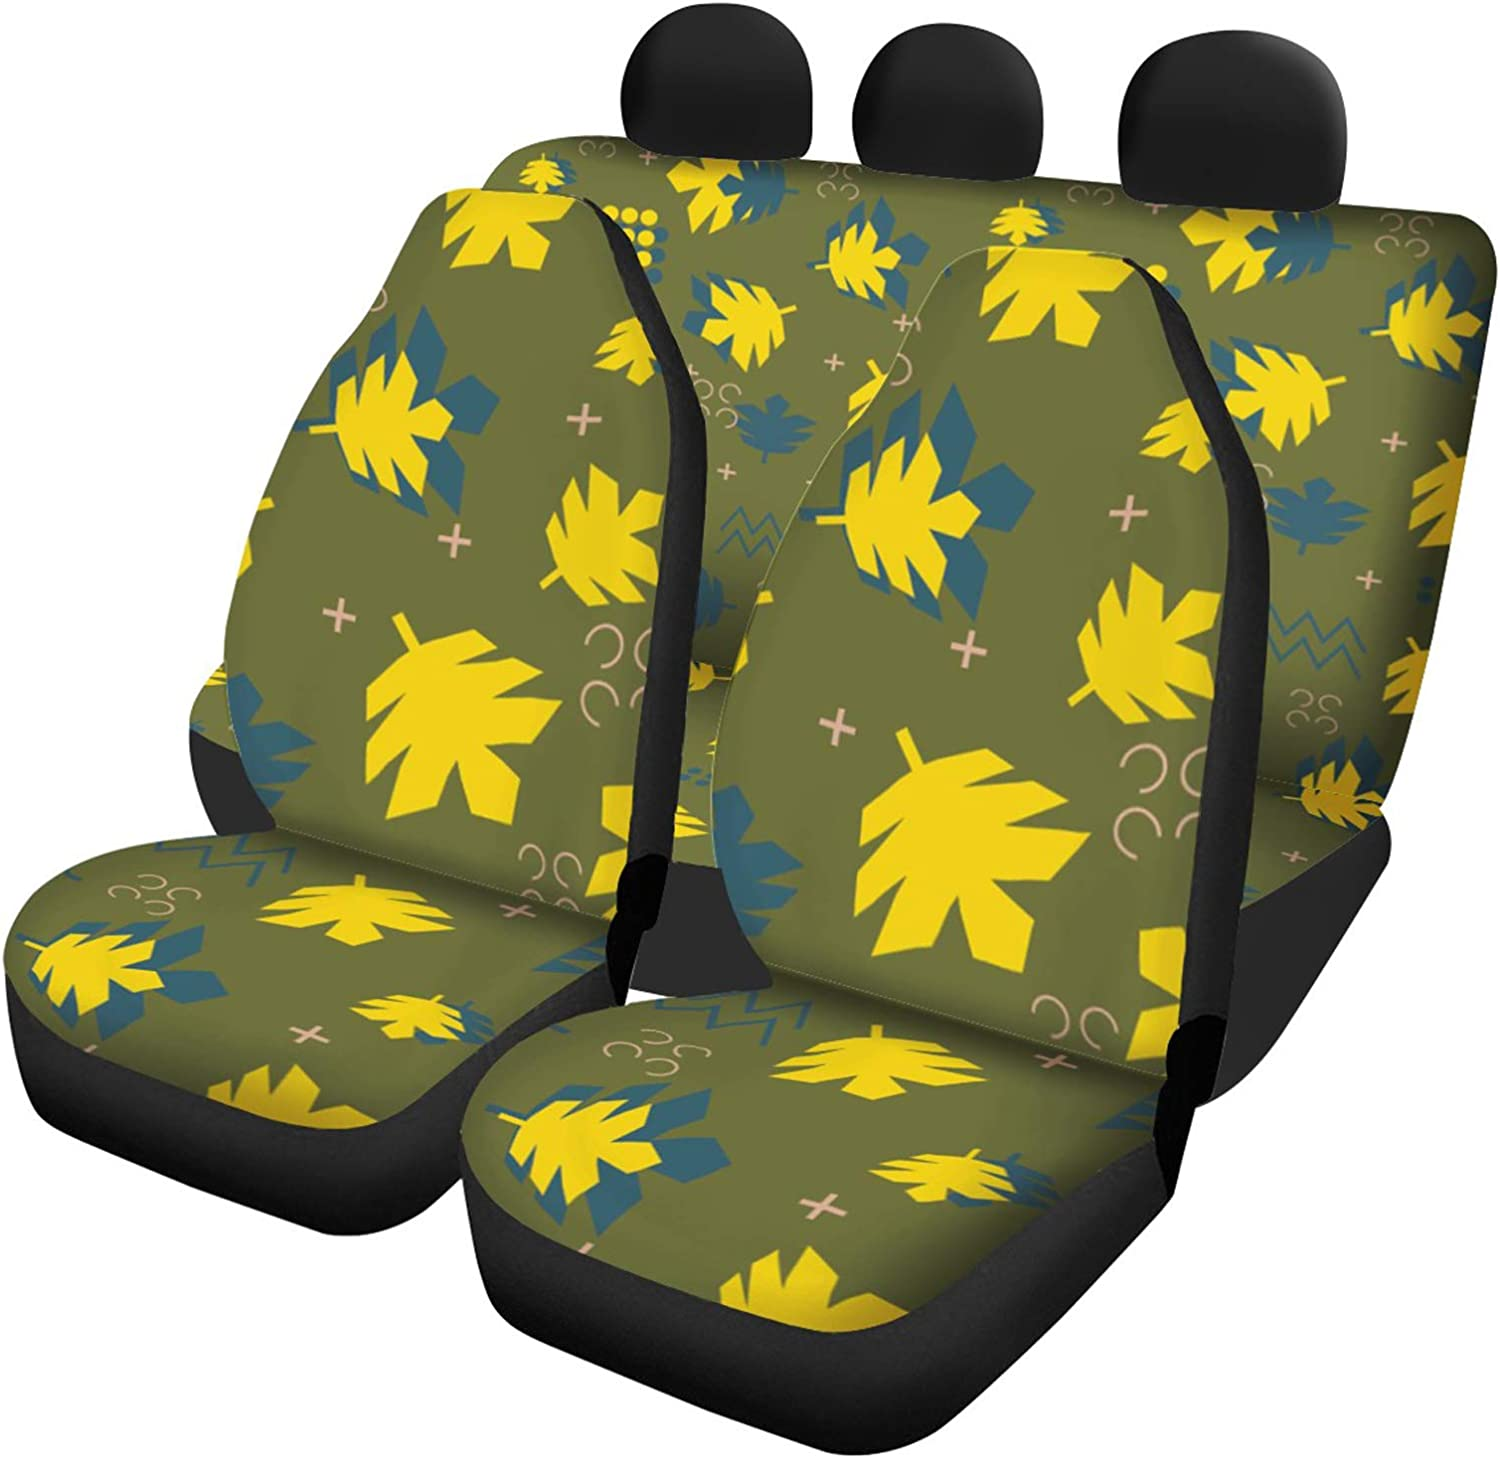 Car Seat Covers Bombing free shipping 5 Full Set Fit Popular brand C fit Universal Comfort Most